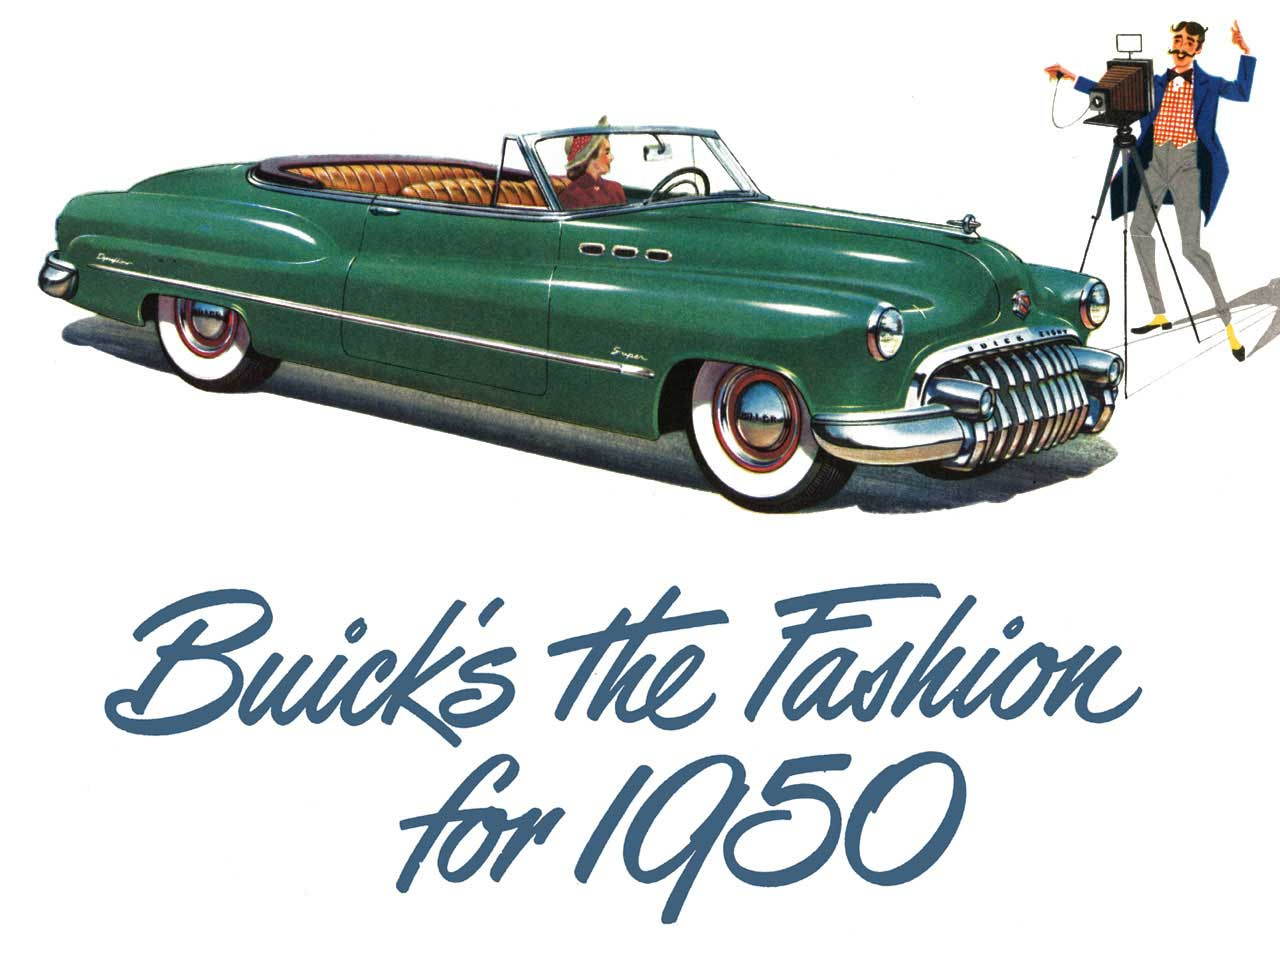 74 Buick Under Dash Fuse Box Removal 1950 Owners Guide Hometown Buicks The Fashion For